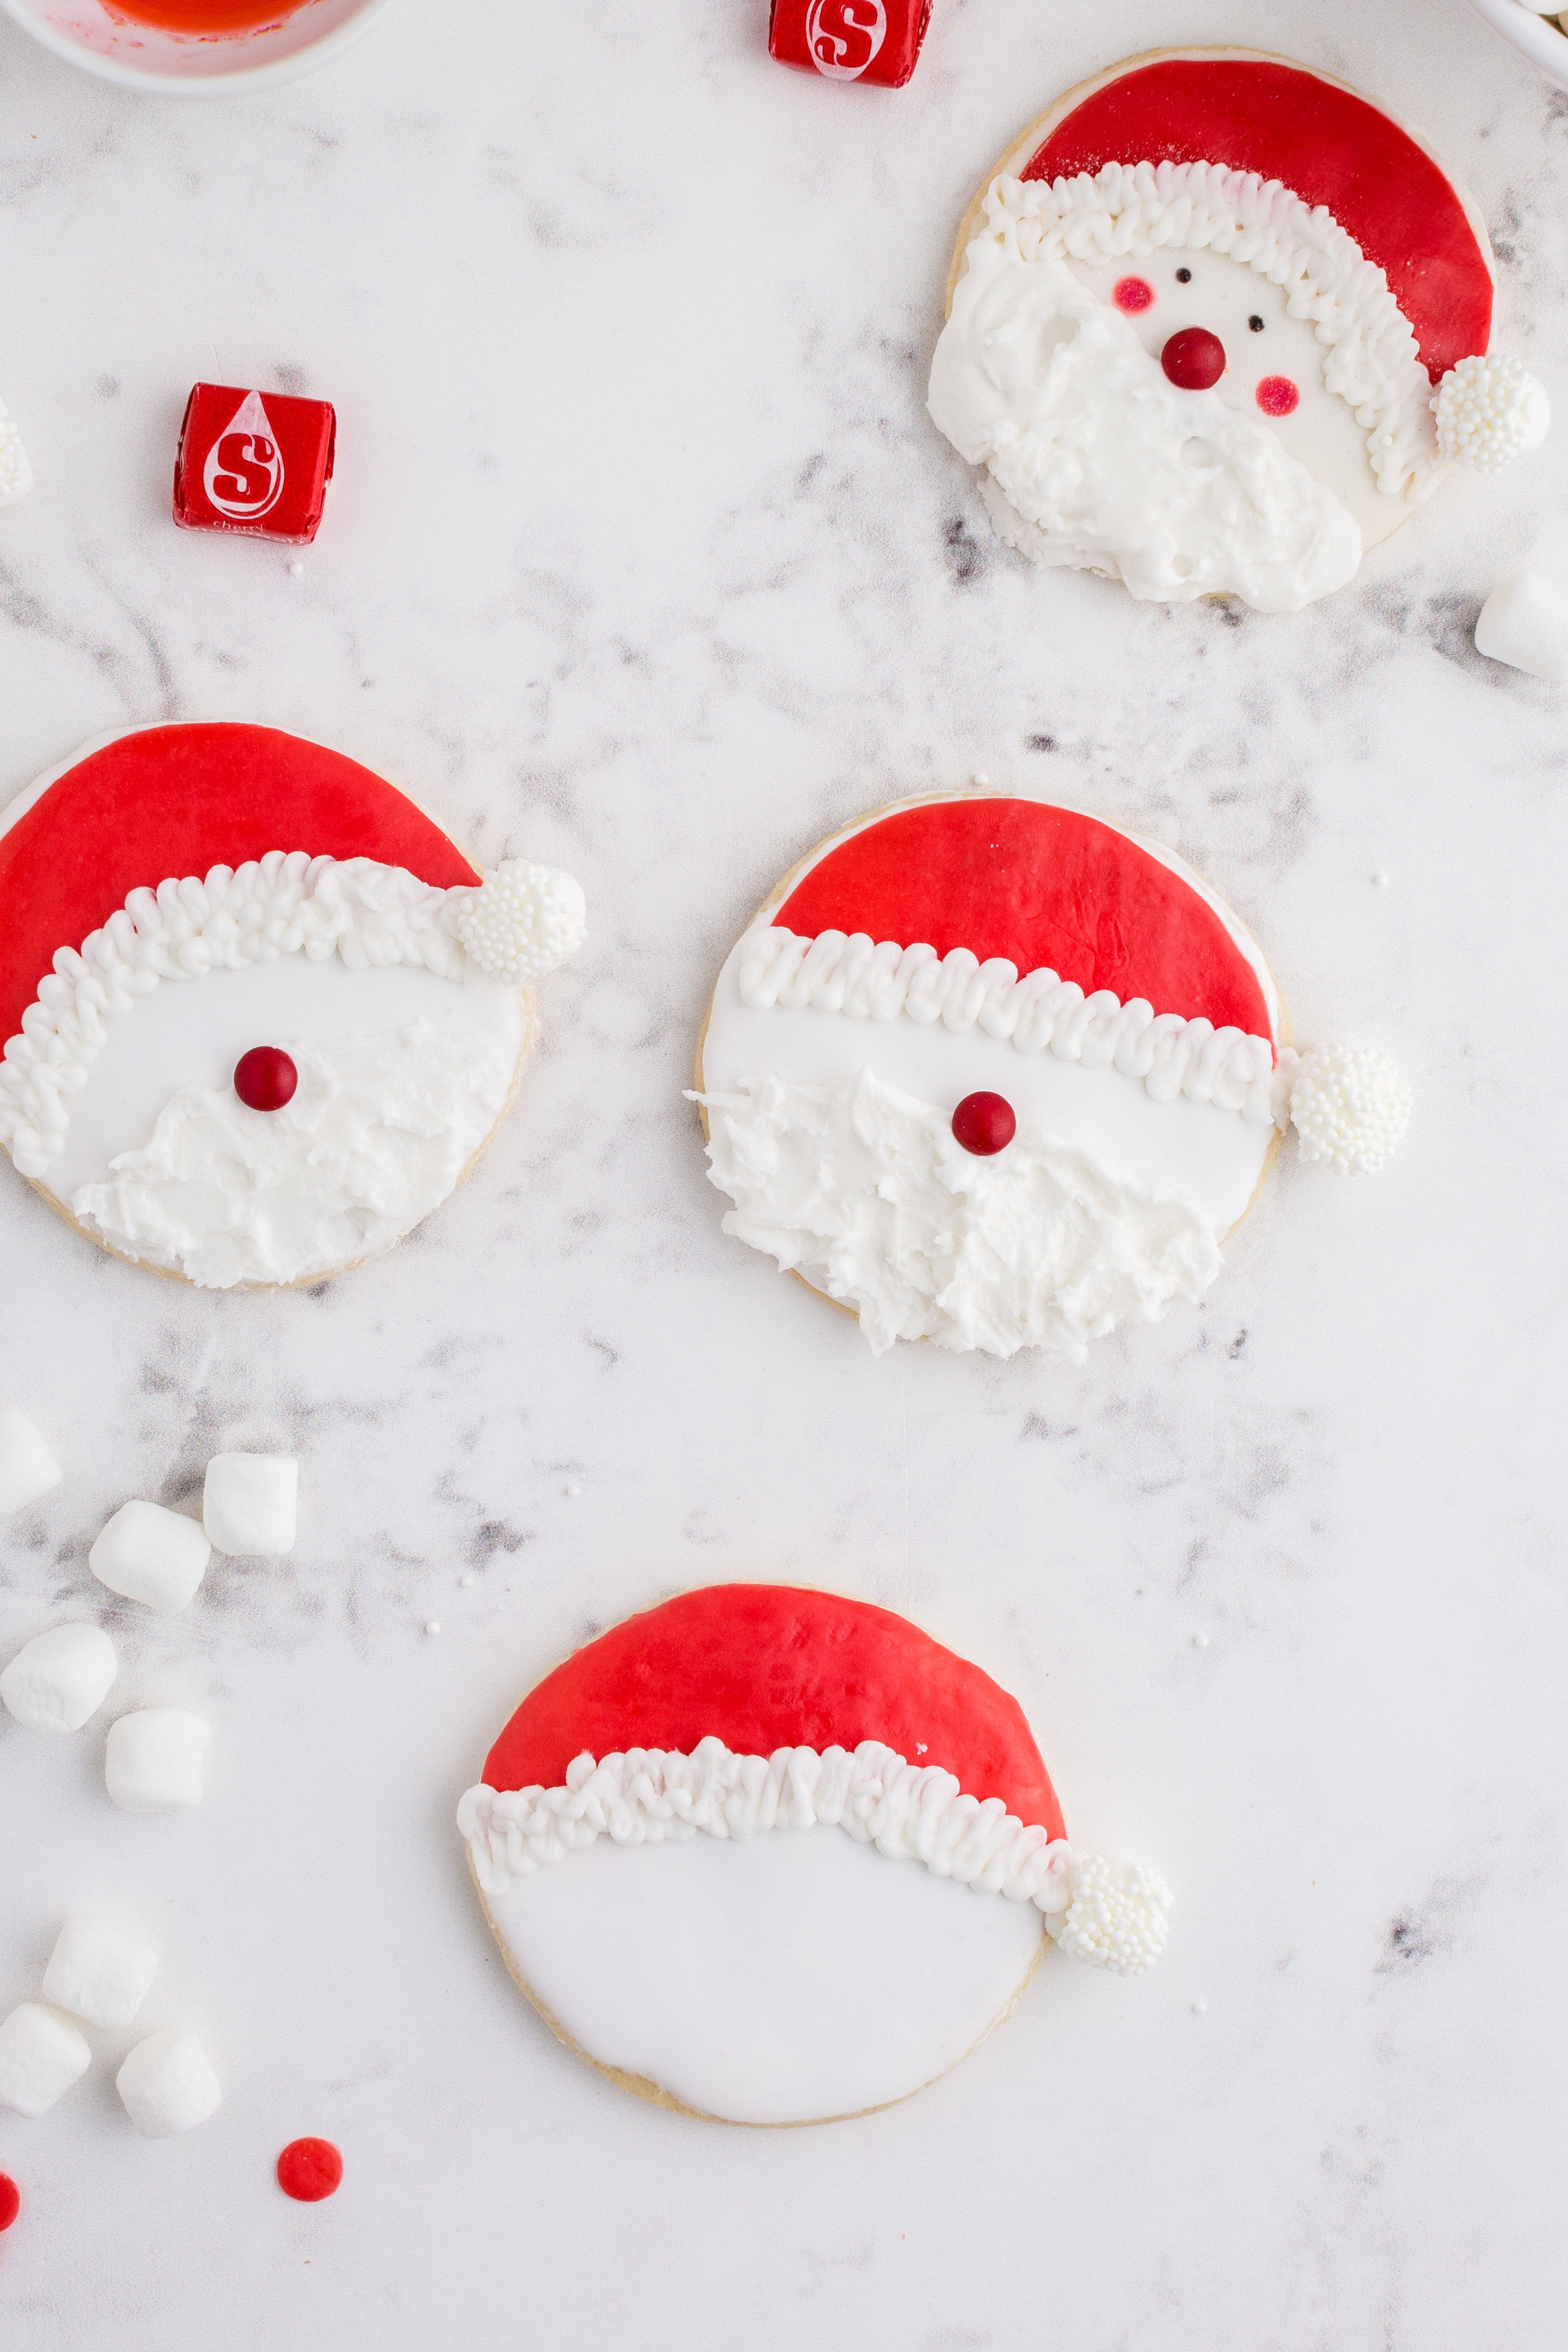 noses and beards added onto the Santa cookie faces